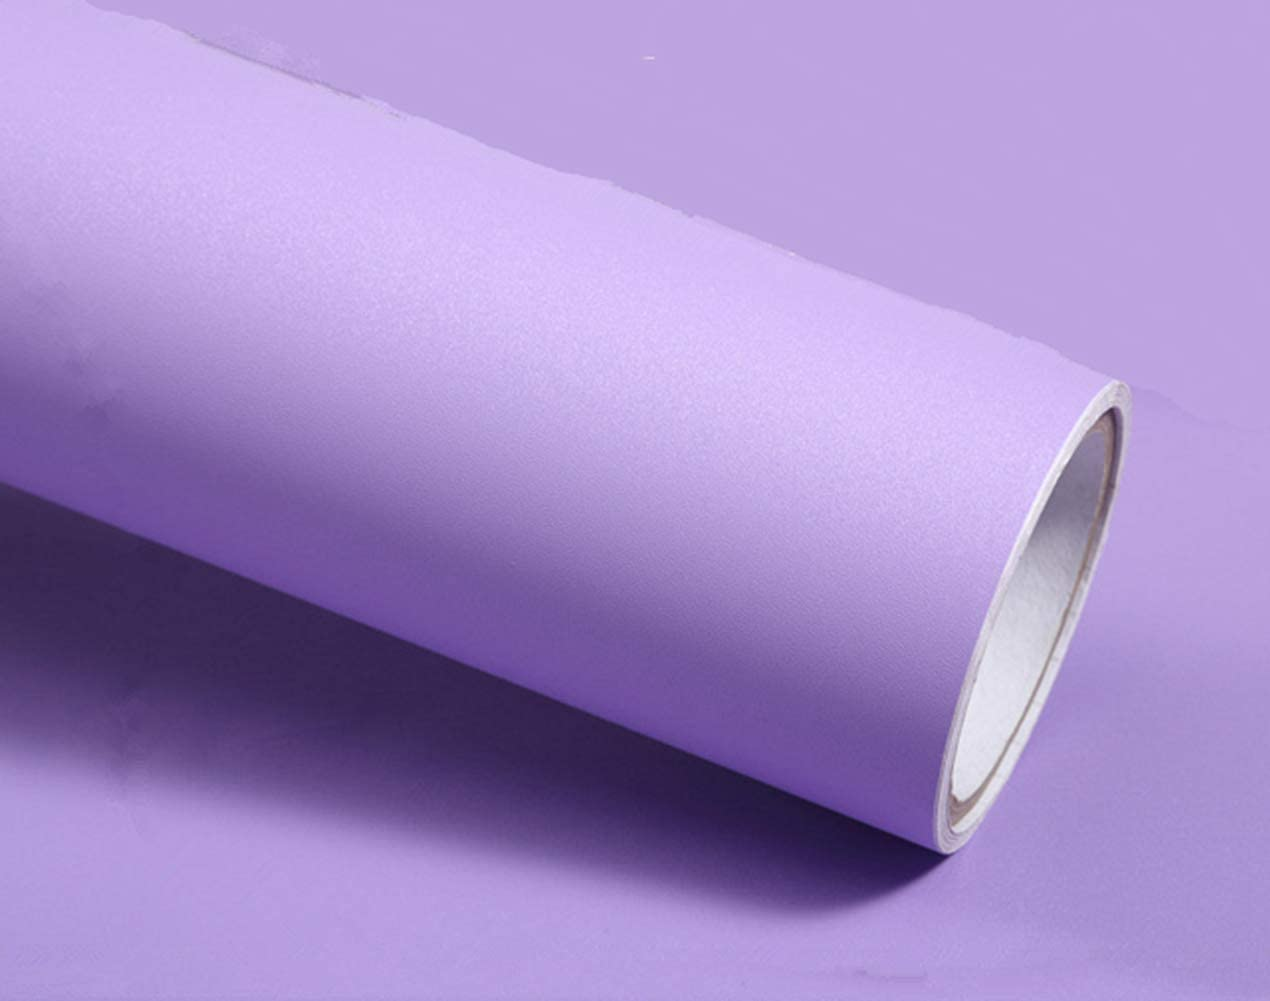 Frosted Solid Color Peel Stick Wallpaper Adhesive Vinyl Film for Kitchen Bathroom Countertop Decorative Paper 15.8inch by 6.56ft (Purple)